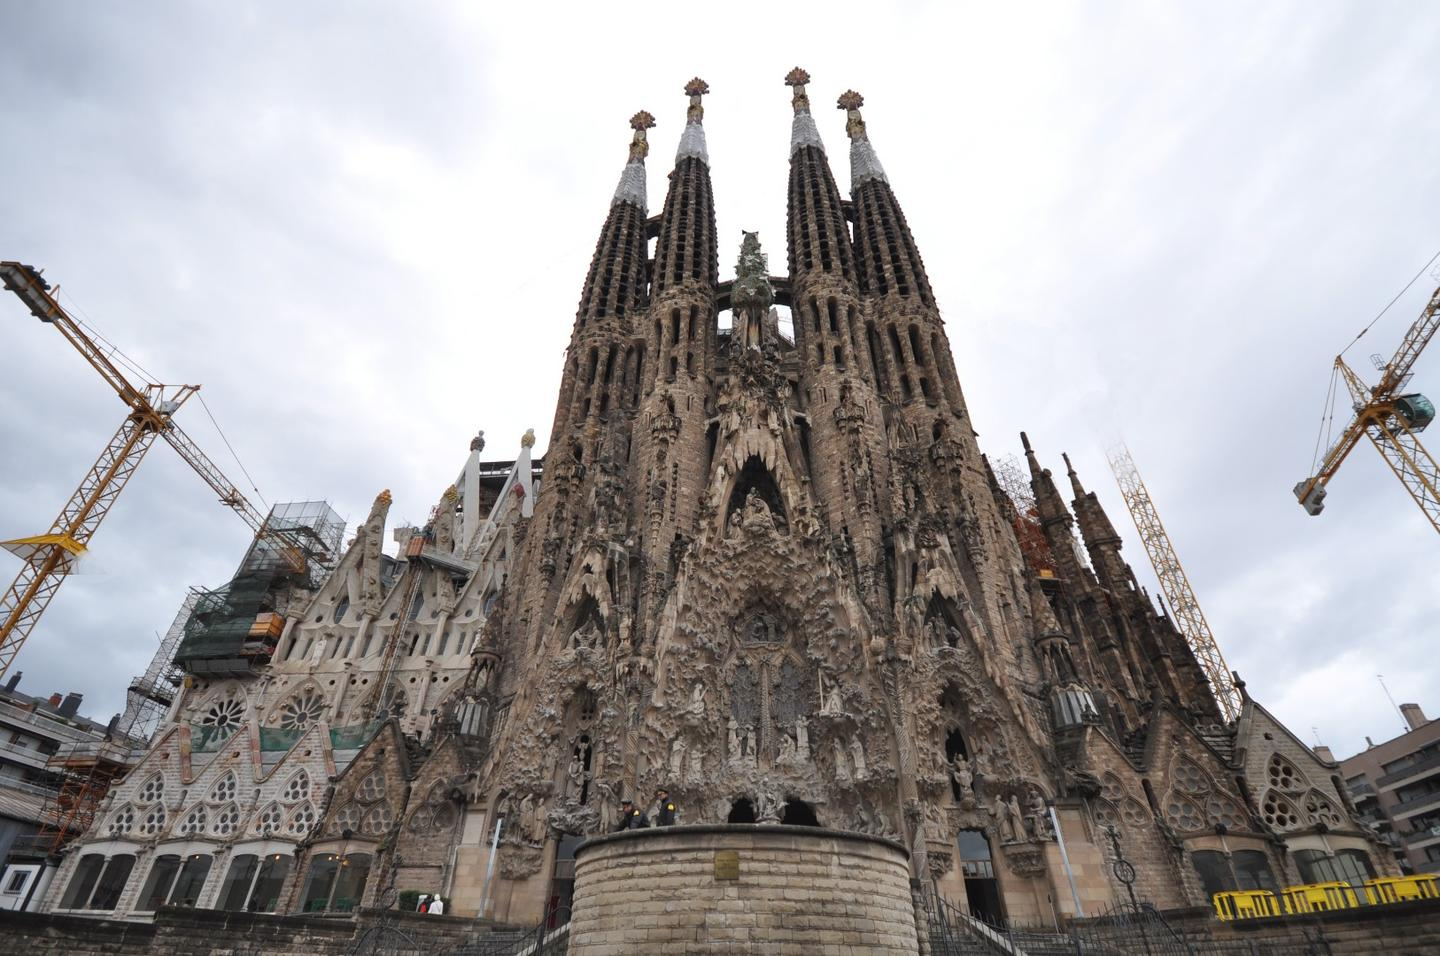 La Sagrada Familia is expected to be completed in 2026